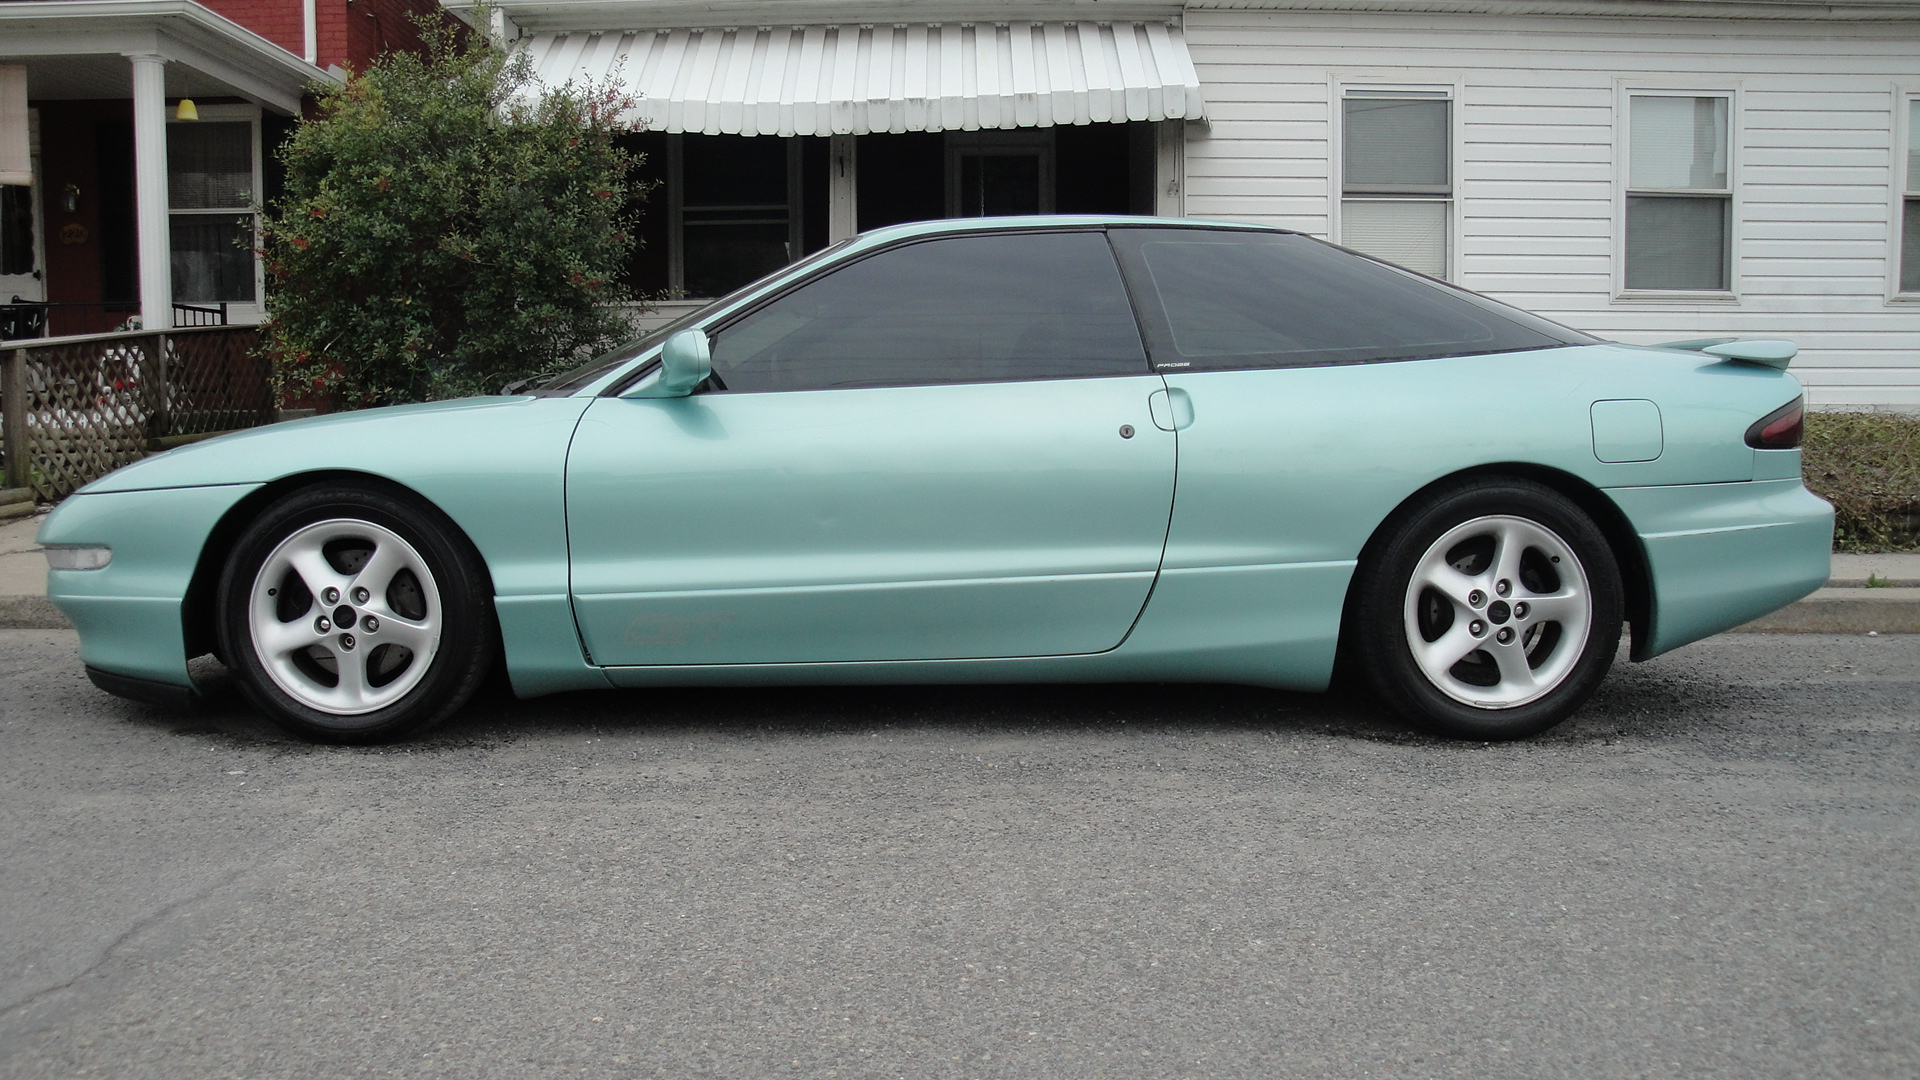 Ford Probe #7